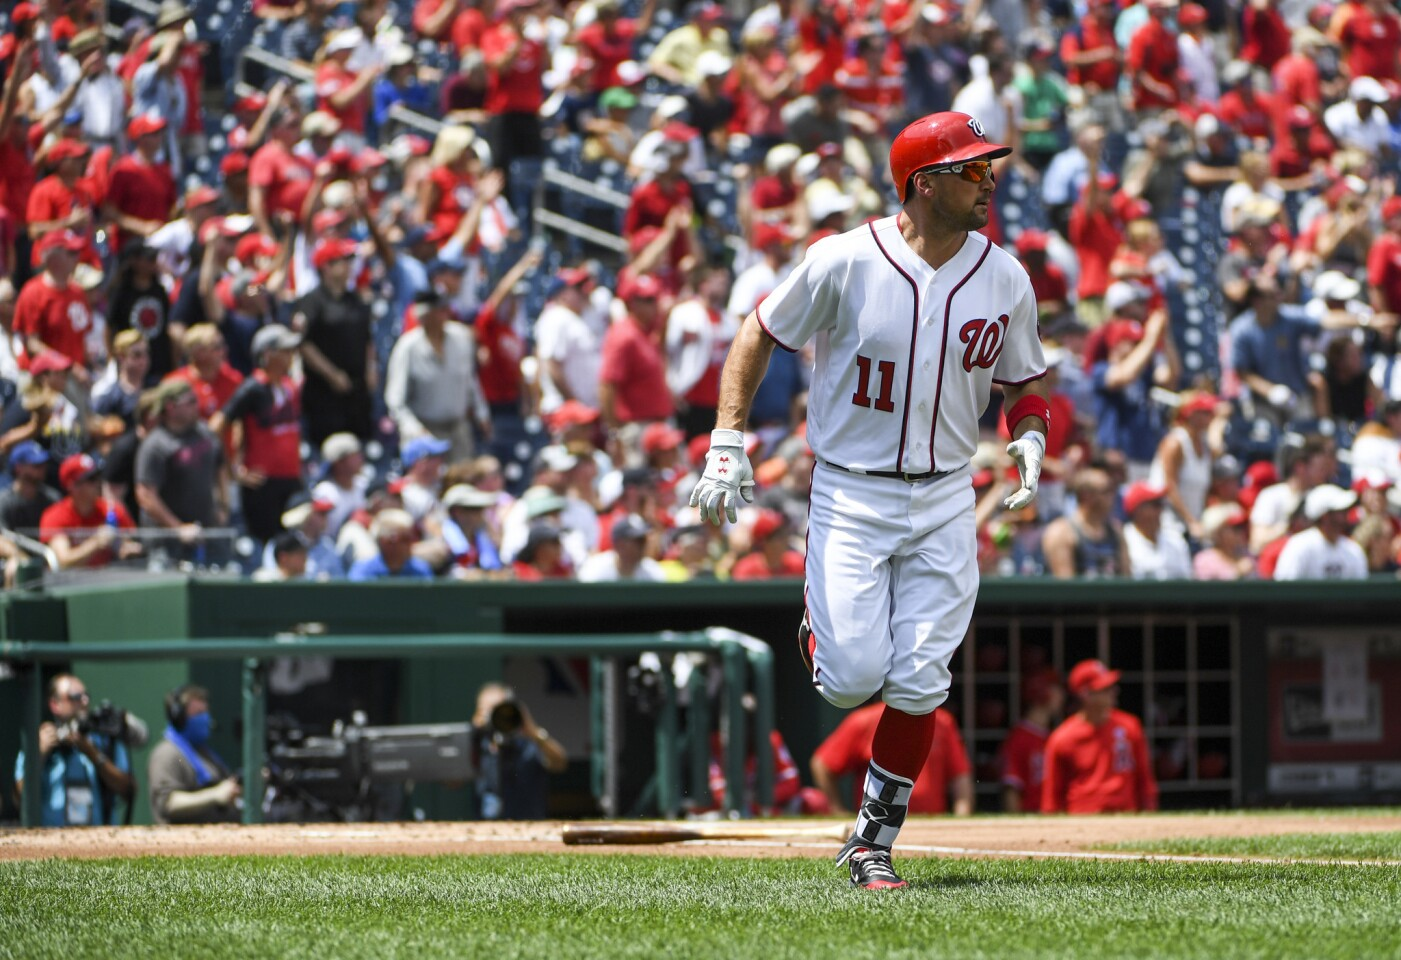 Washington Nationals first baseman Ryan Zimmerman cranks a two-run homer in the first inning against the Los Angeles Angels in Washington on Wednesday, Aug. 16, 2017. MUST CREDIT: Washington Post photo by Jonathan Newton. ** Usable by BS, CT, DP, FL, HC, MC, OS, SD, CGT and CCT **